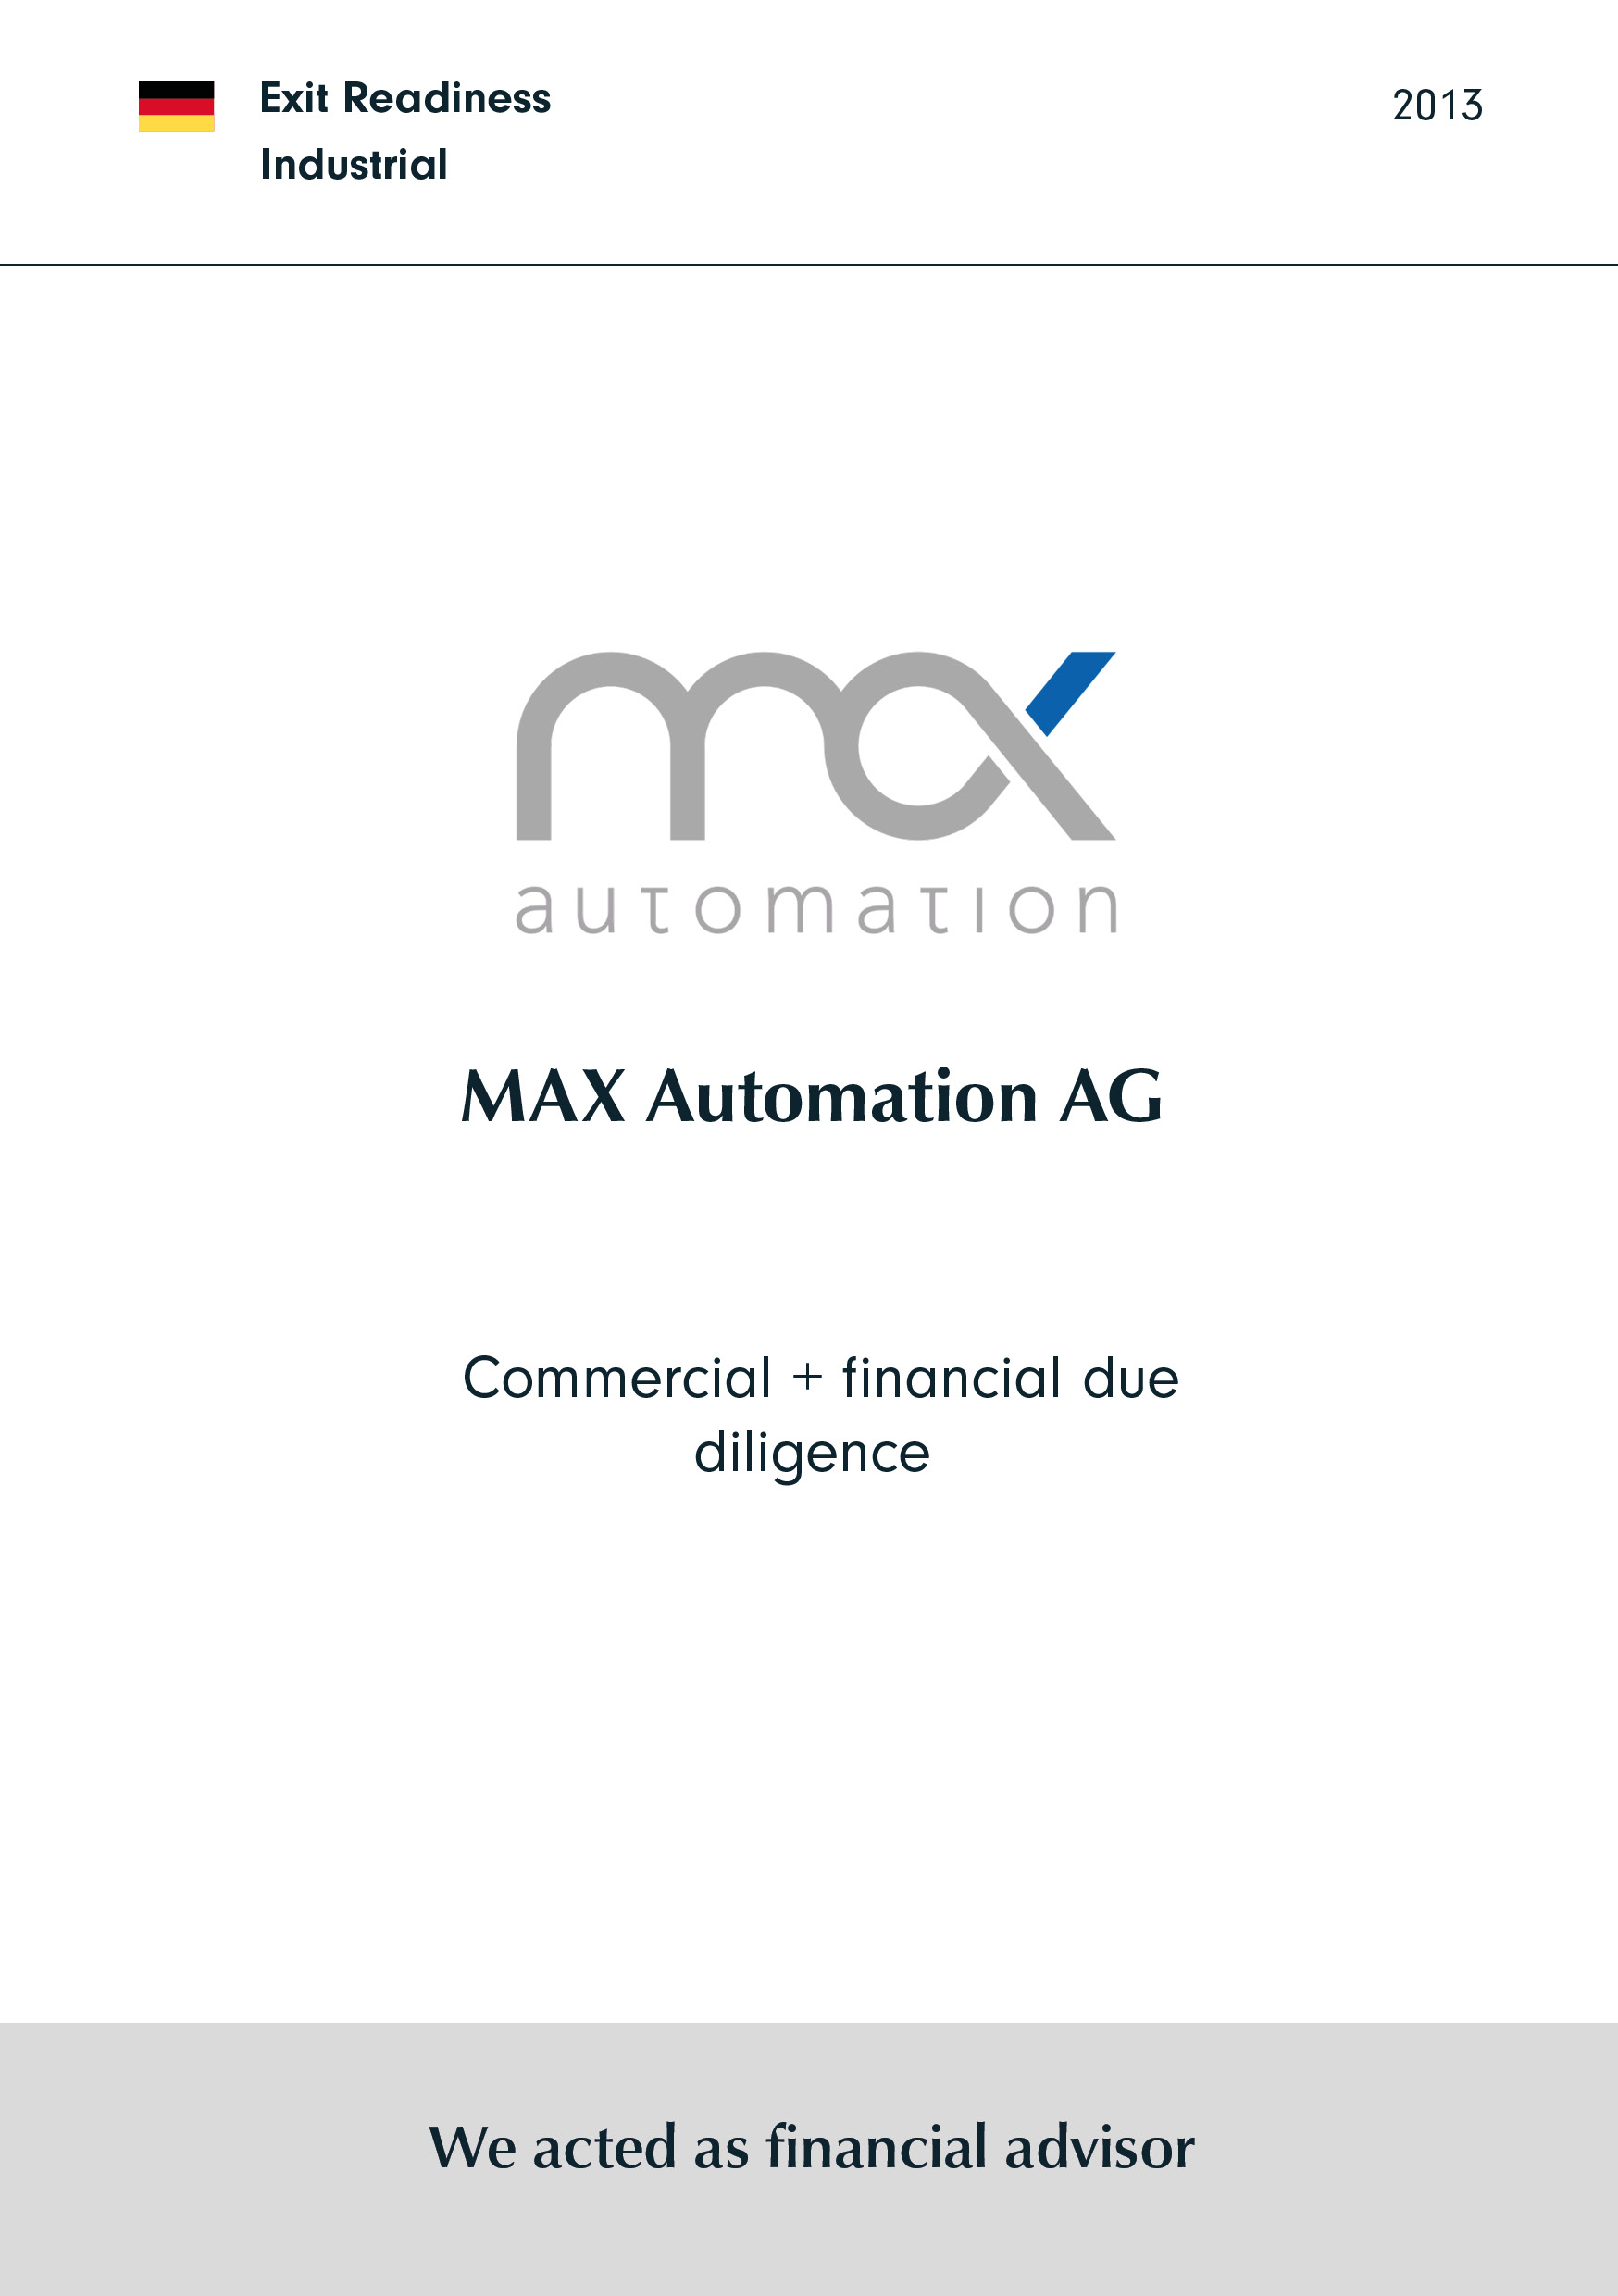 MAX Automation | Commercial + financial due diligence